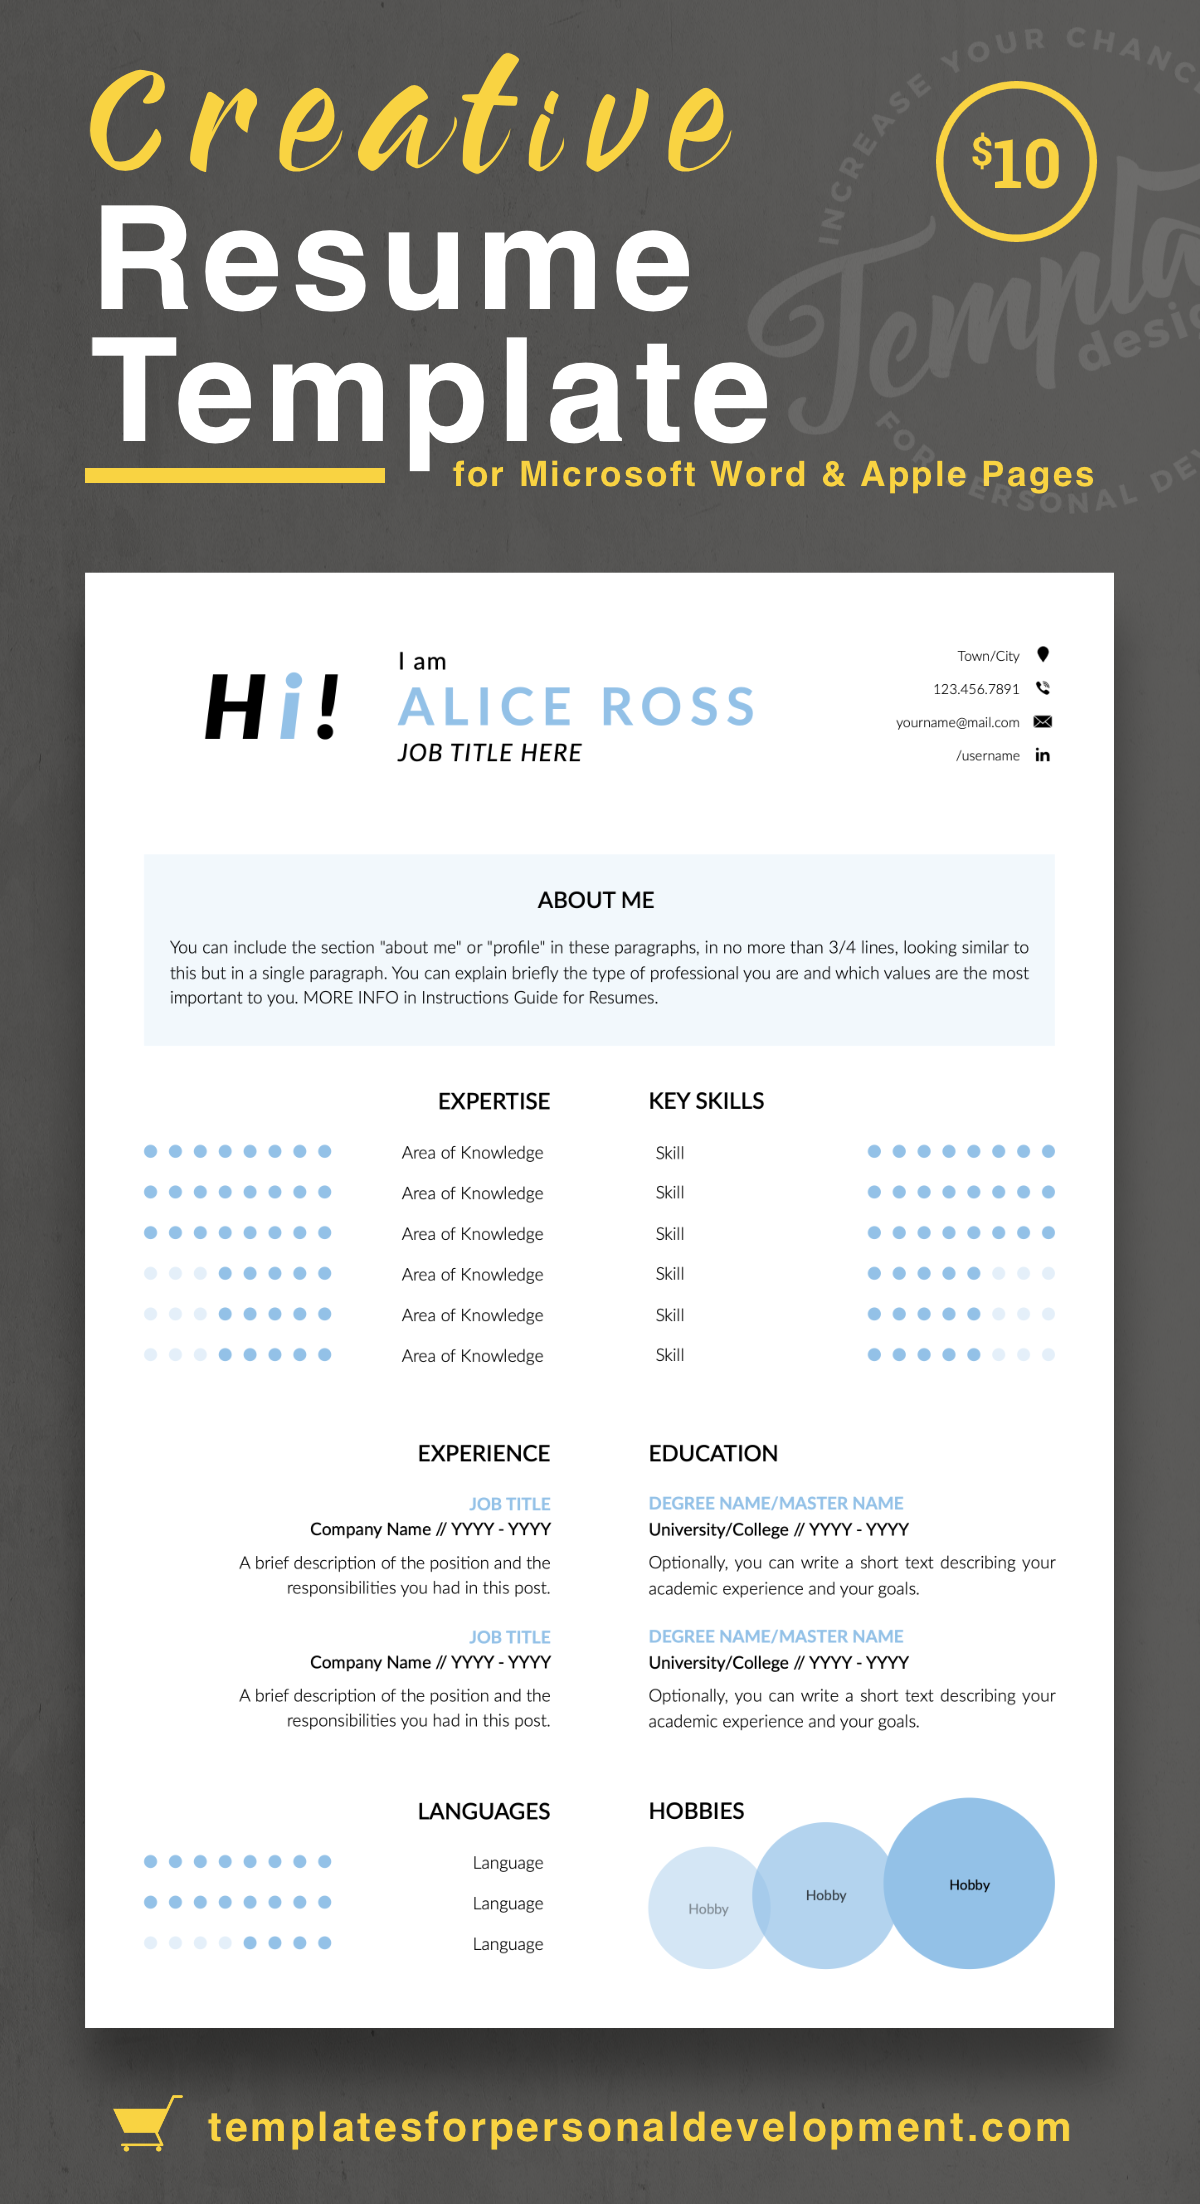 Alice Ross Creative Resume Cv Template For Word Pages Us Letter A4 Files 1 2 3 Page Resume Version Cover Letter References Cover Letter With Resume Templates Creative Resume Templates Resume